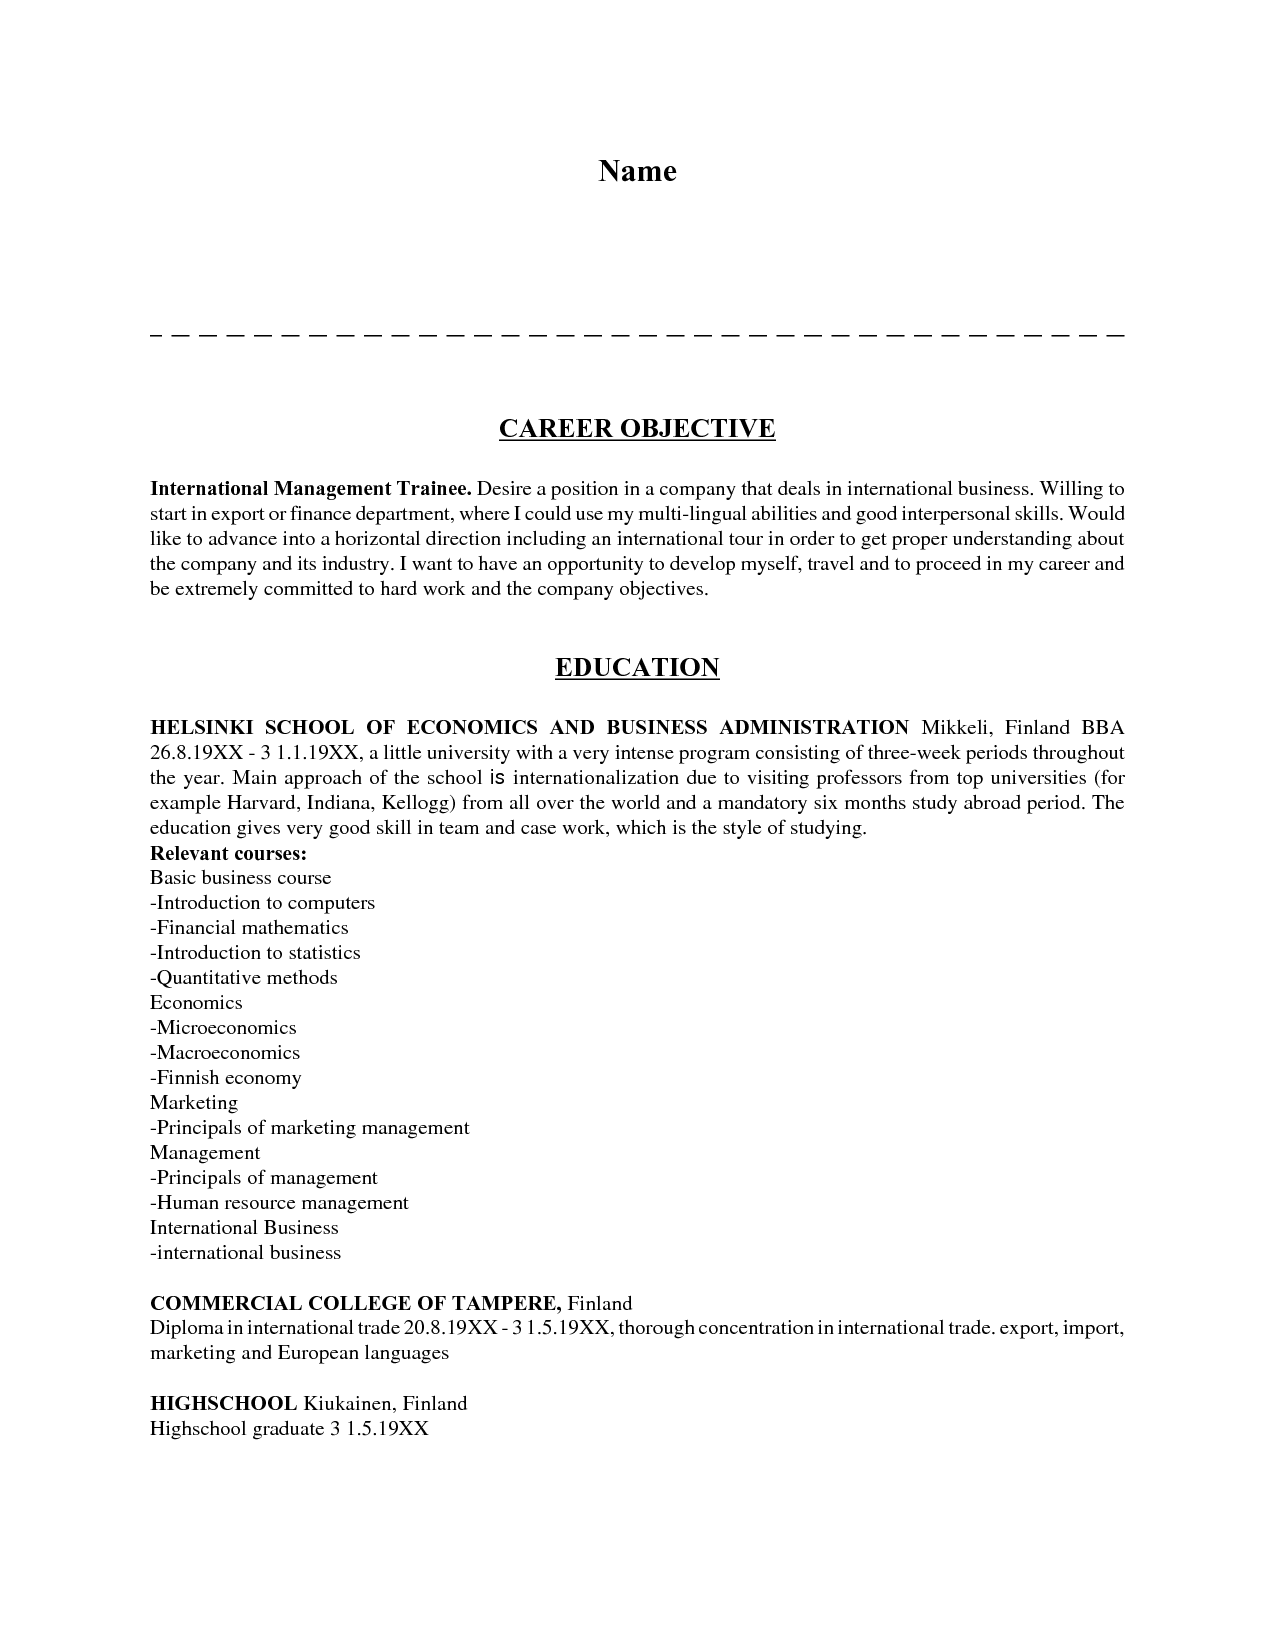 job objectives for resume examples